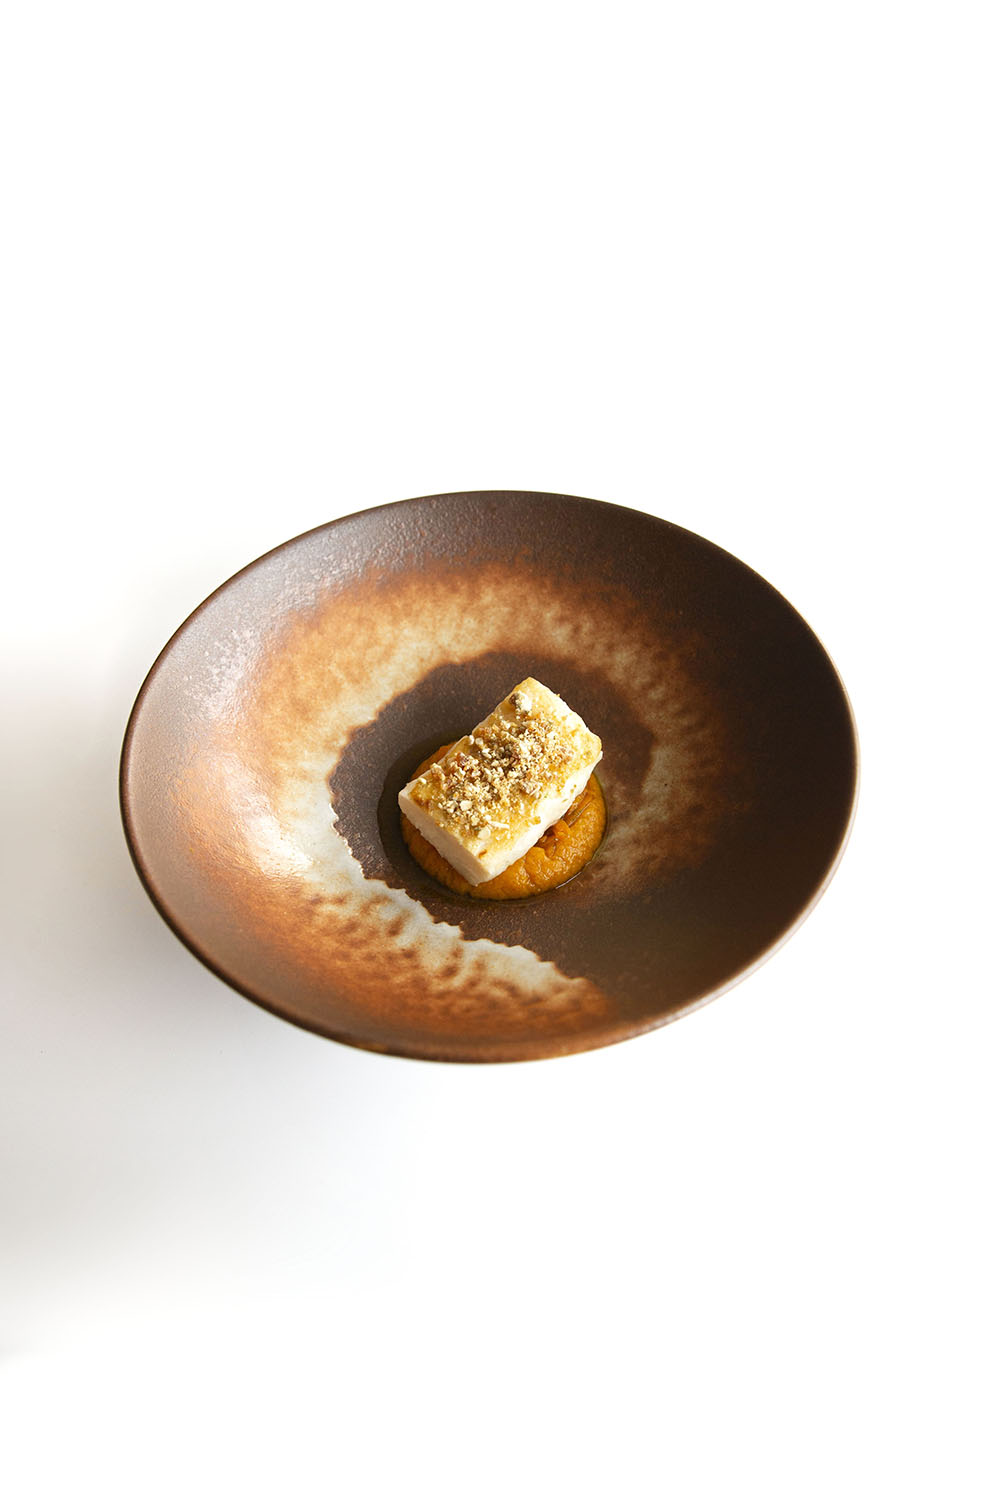 White fish in a bronze bowl